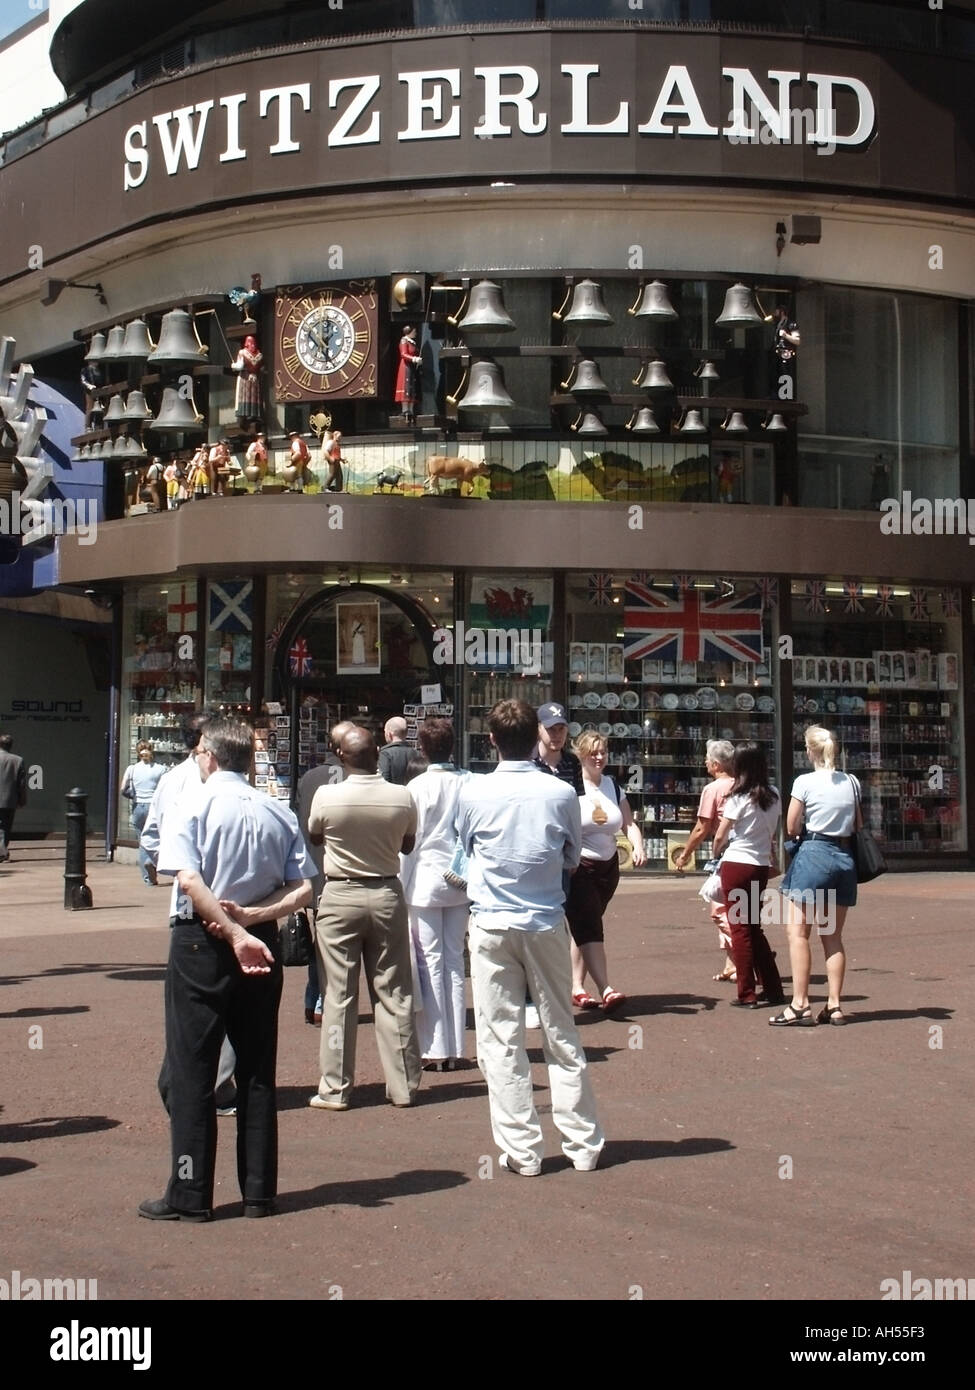 Street scene Swiss tourist information office shop & people watch revolving clock display of cows milkmaids & chiming bells Leicester Square London UK Stock Photo